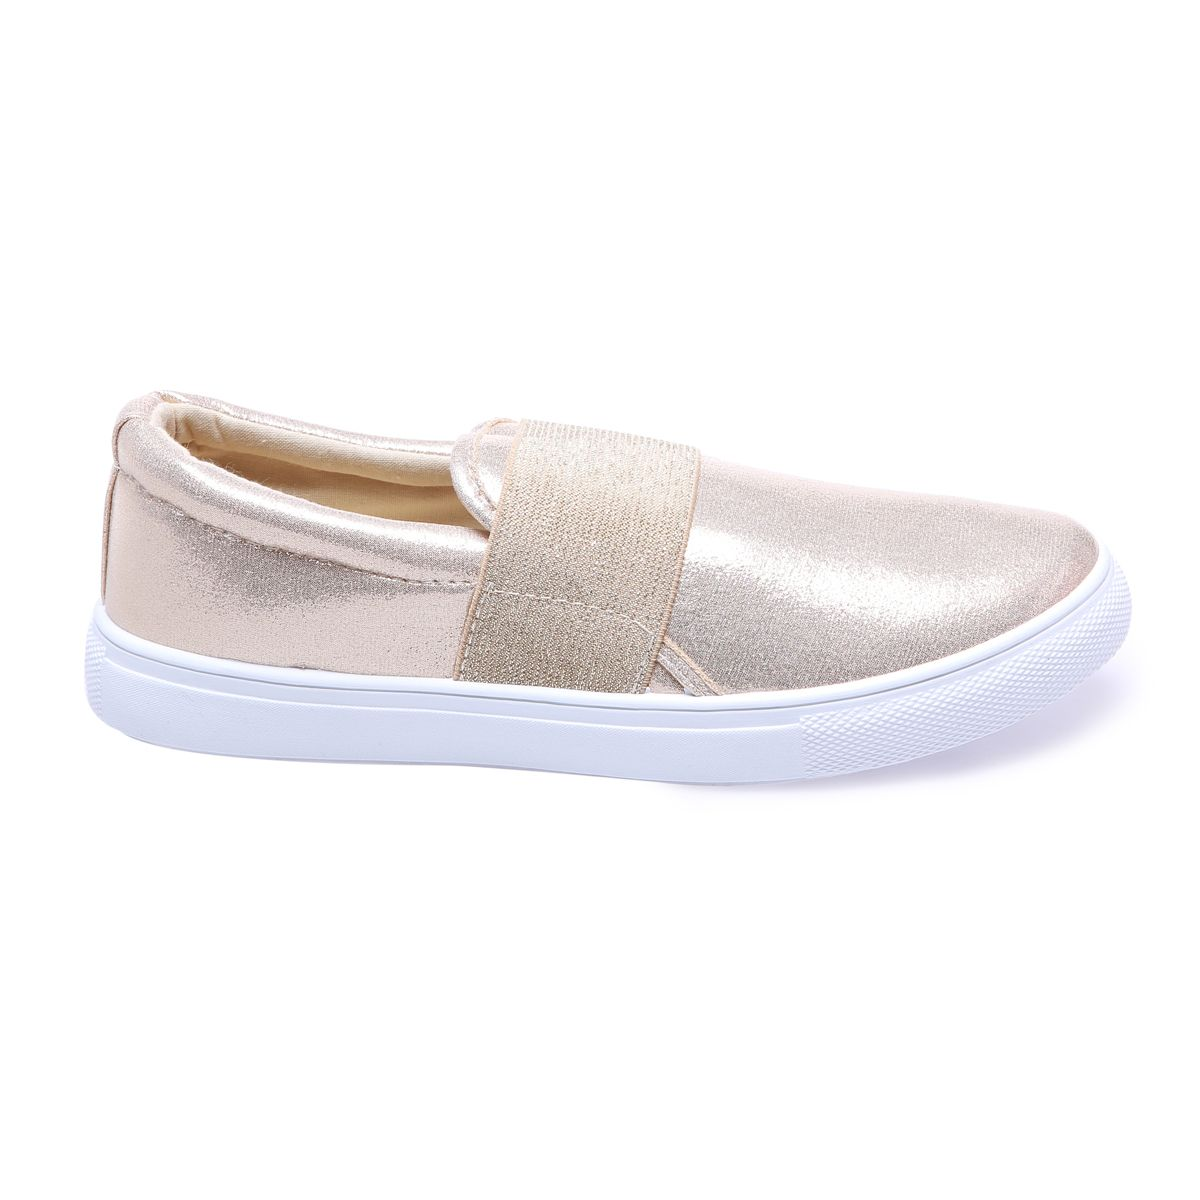 Slip-on dorées simili cuir brillant